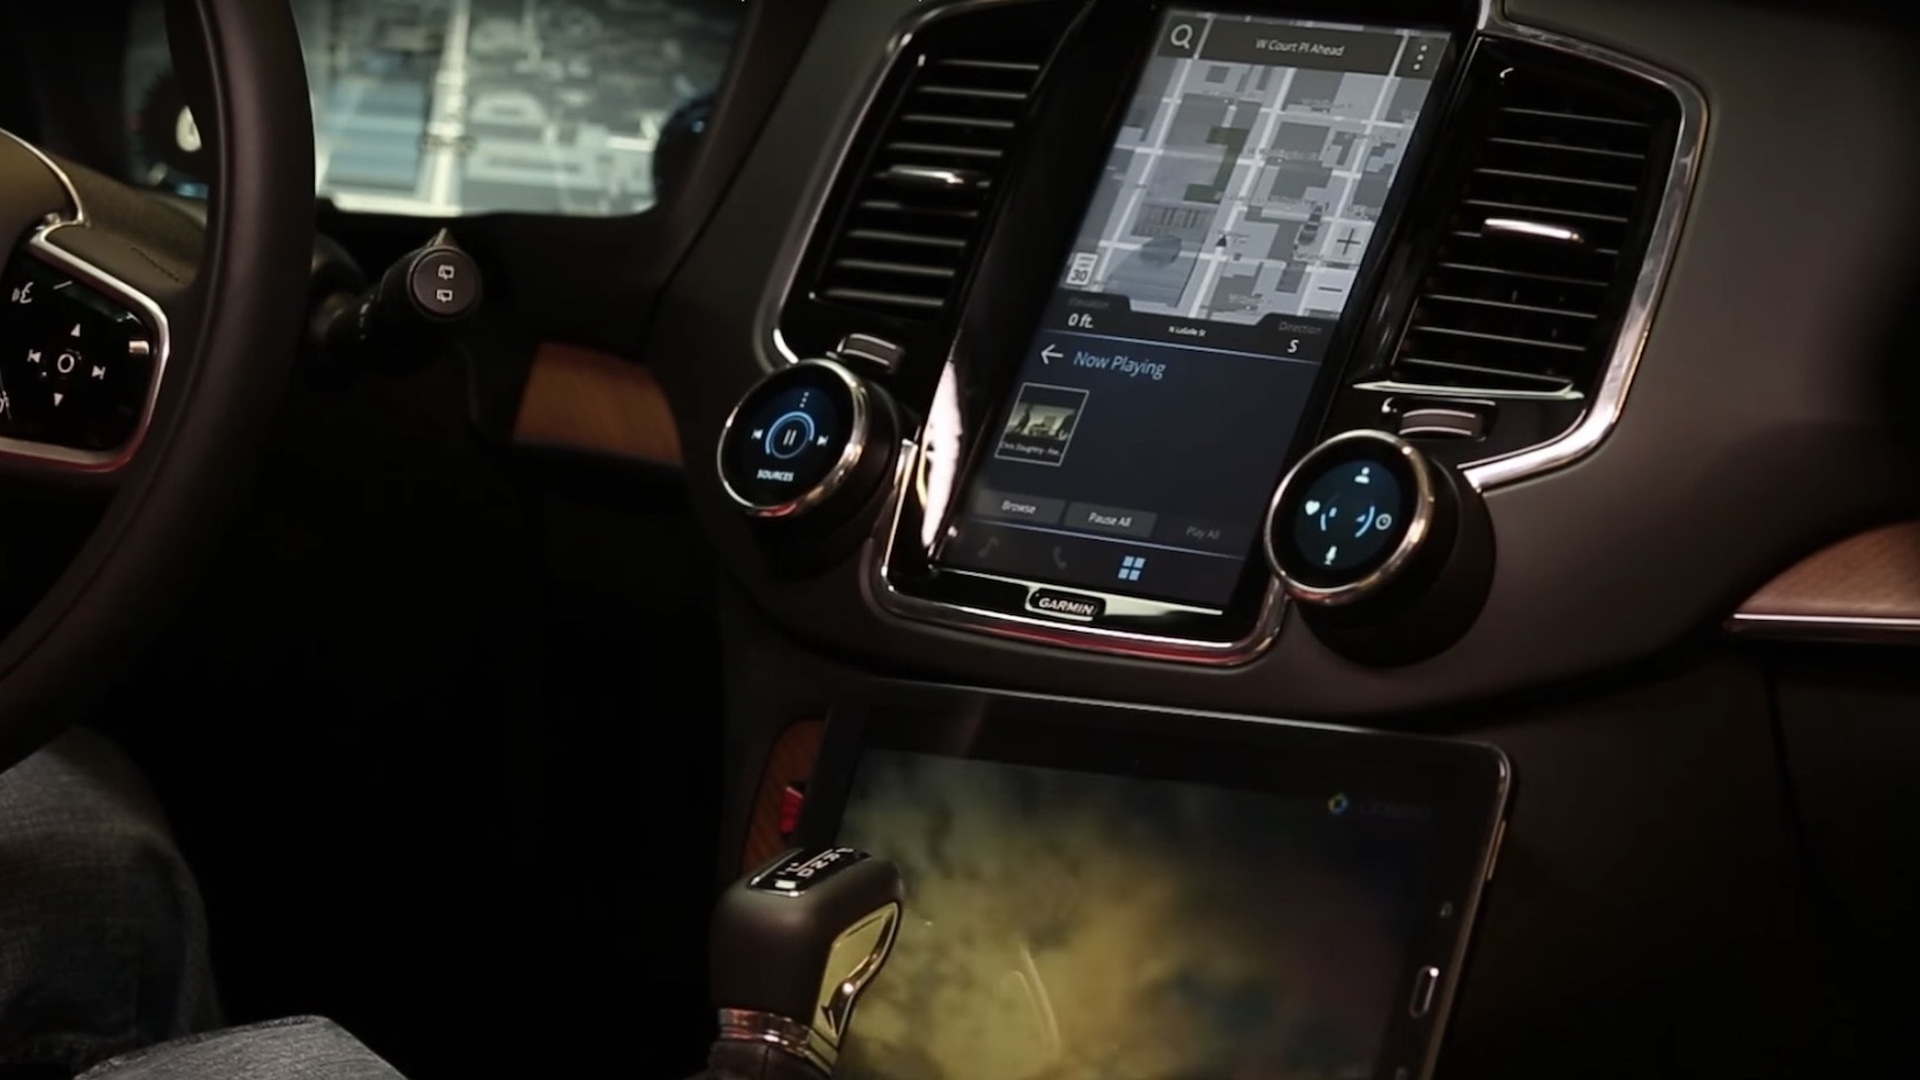 Garmin next-generation infotainment system previewed in future Volvo interior